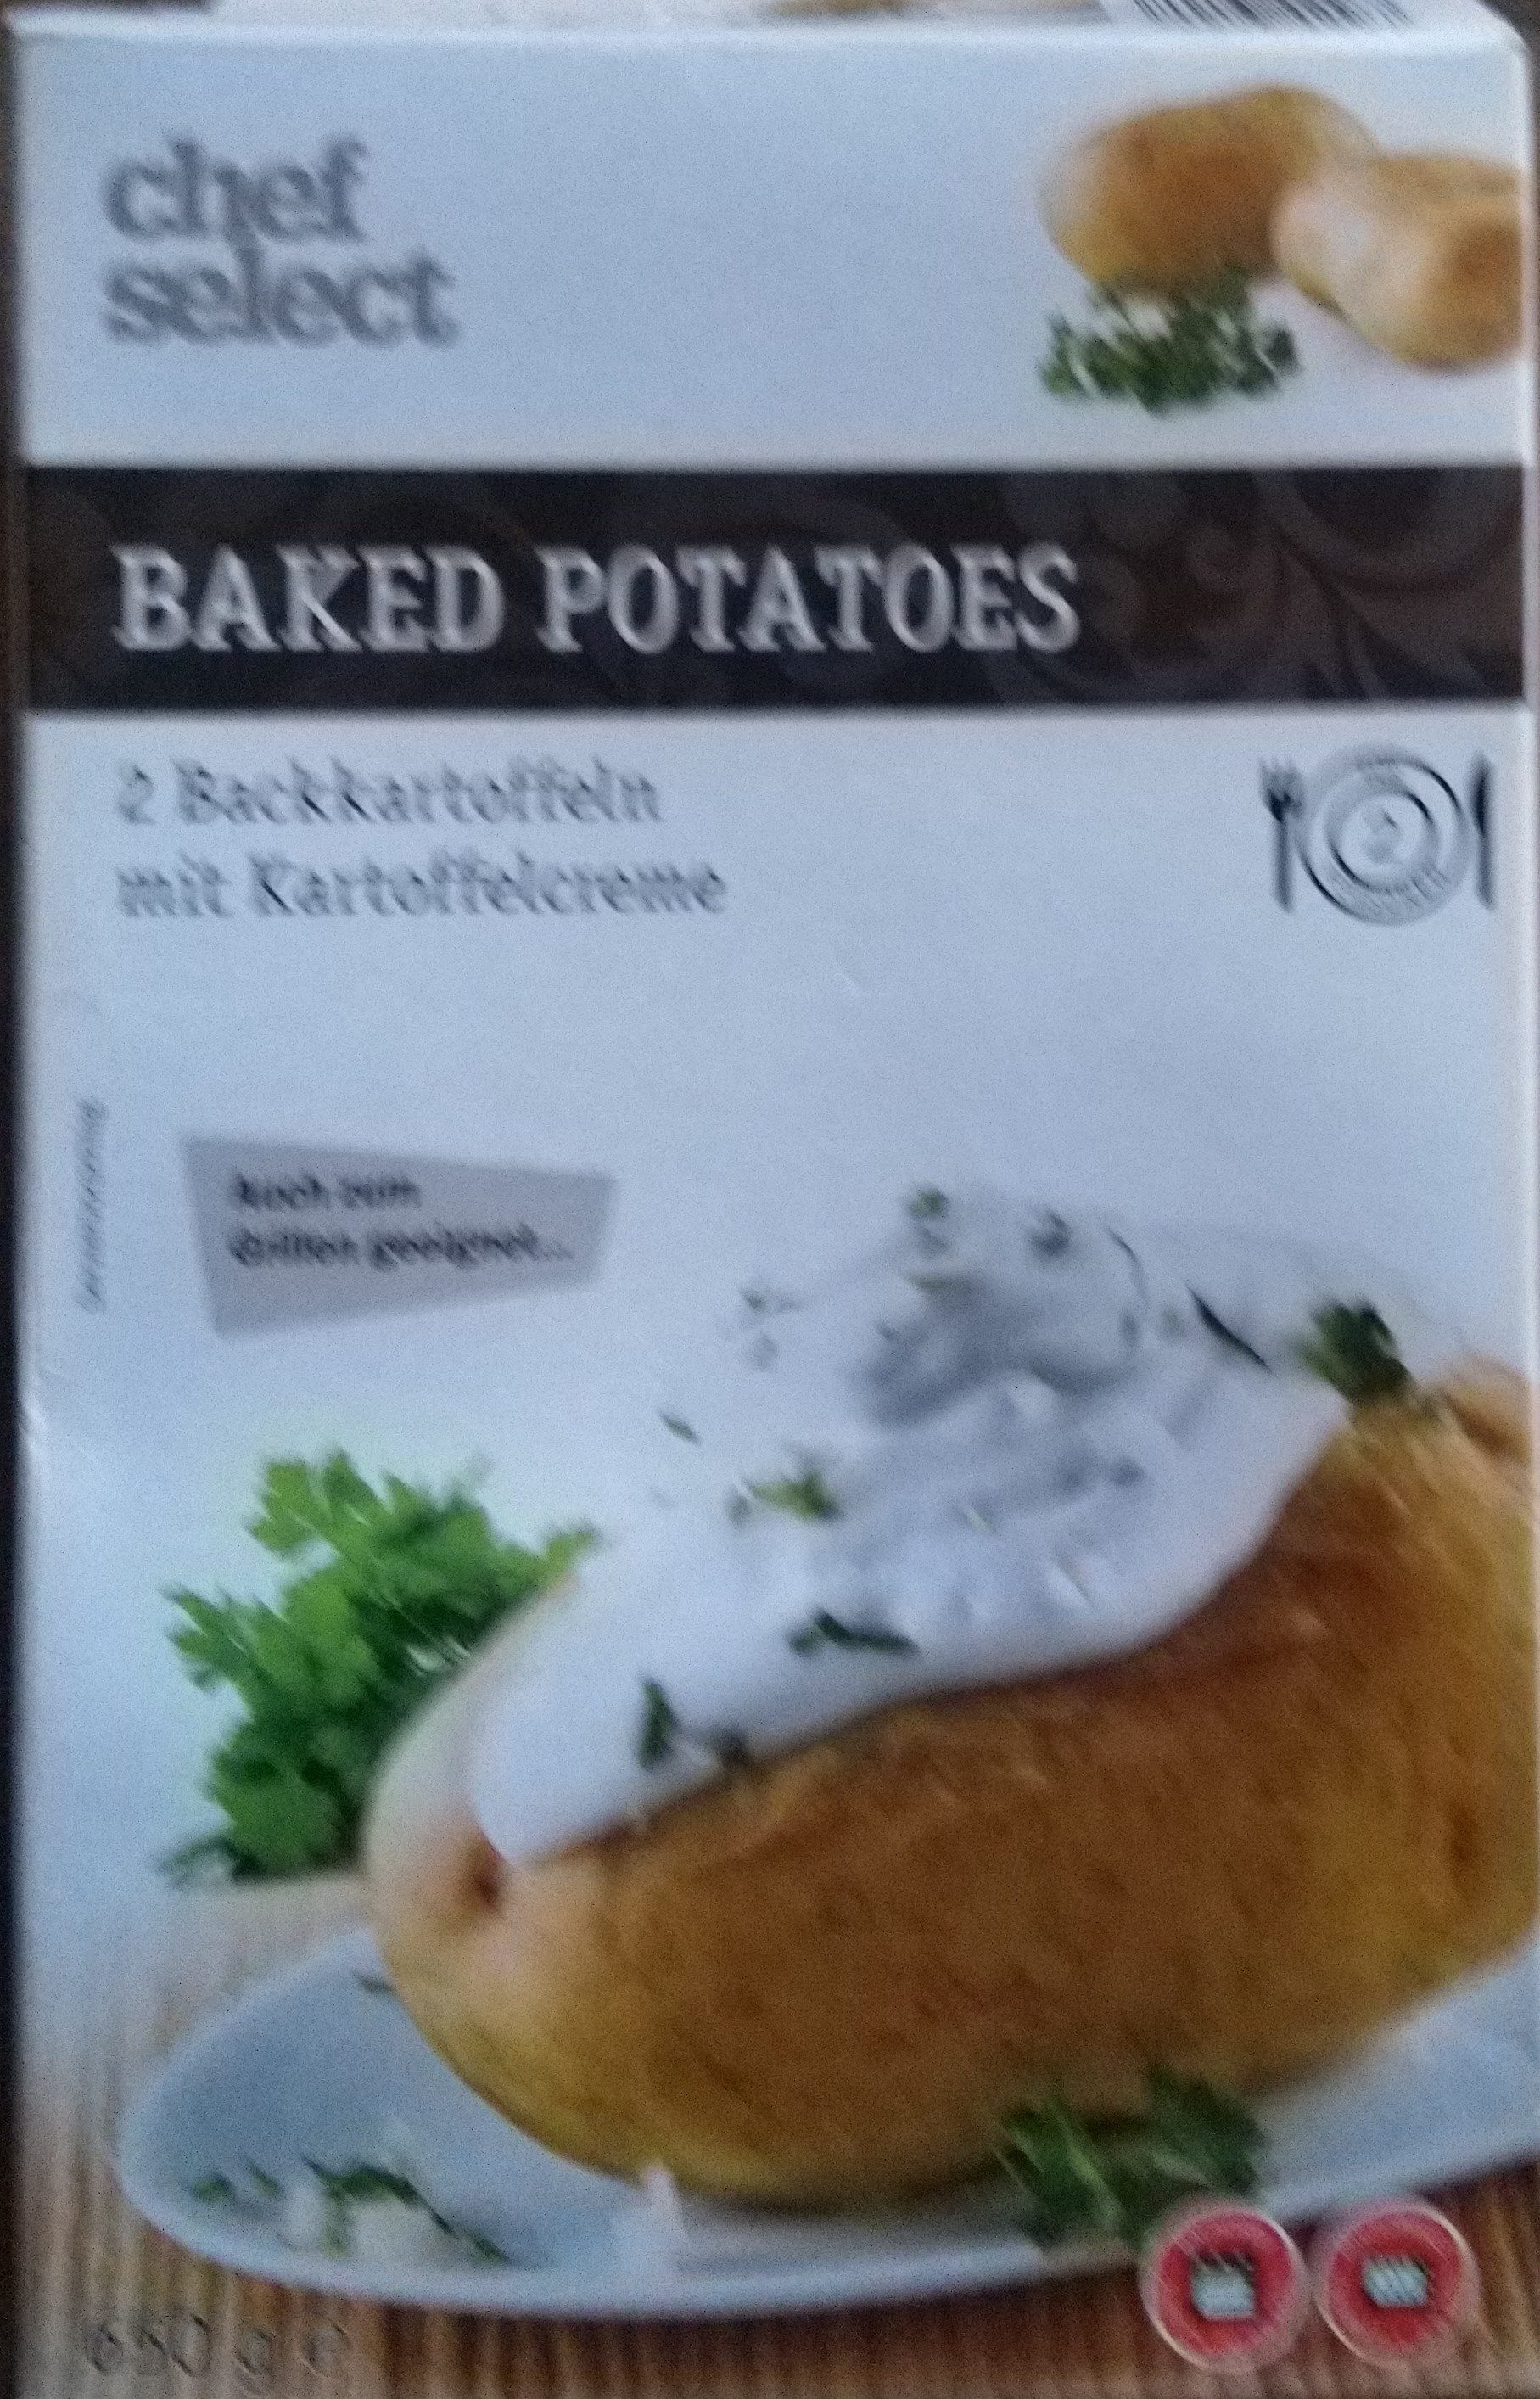 Baked Potatoes - Product - nl